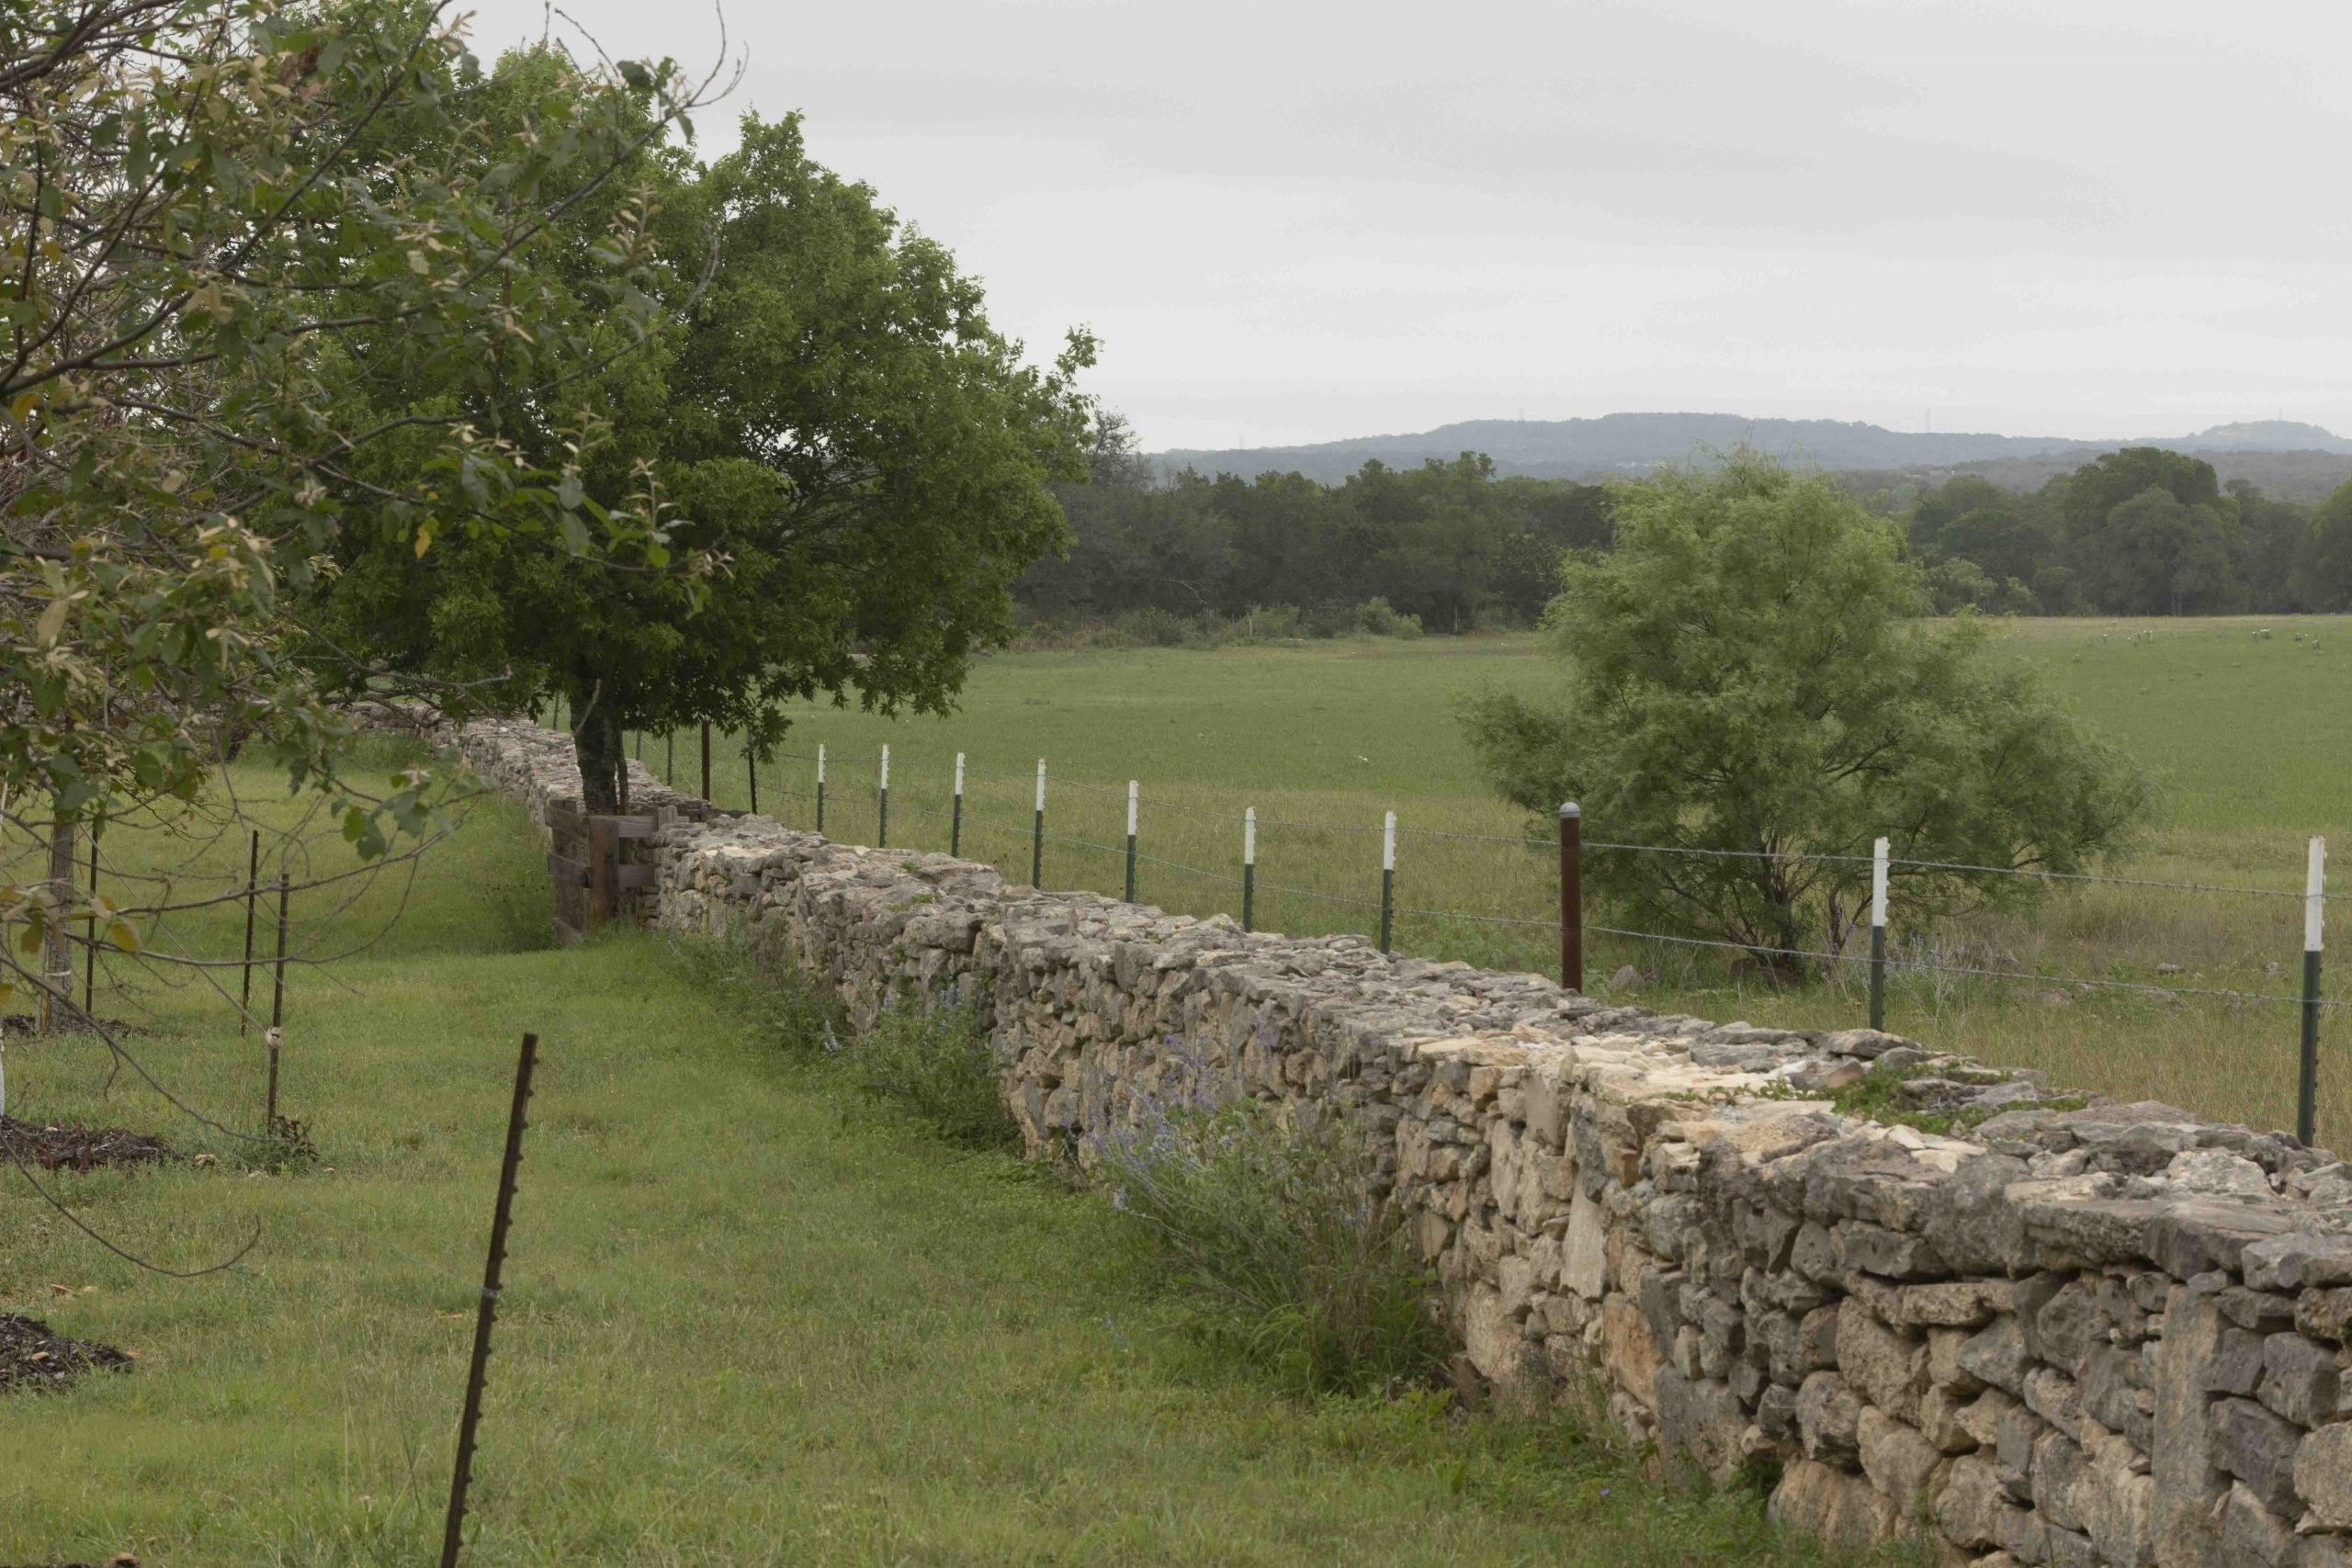 Taxpayers paid $1.5M to protect land over the aquifer. Will San Antonio pipe sewage across it?